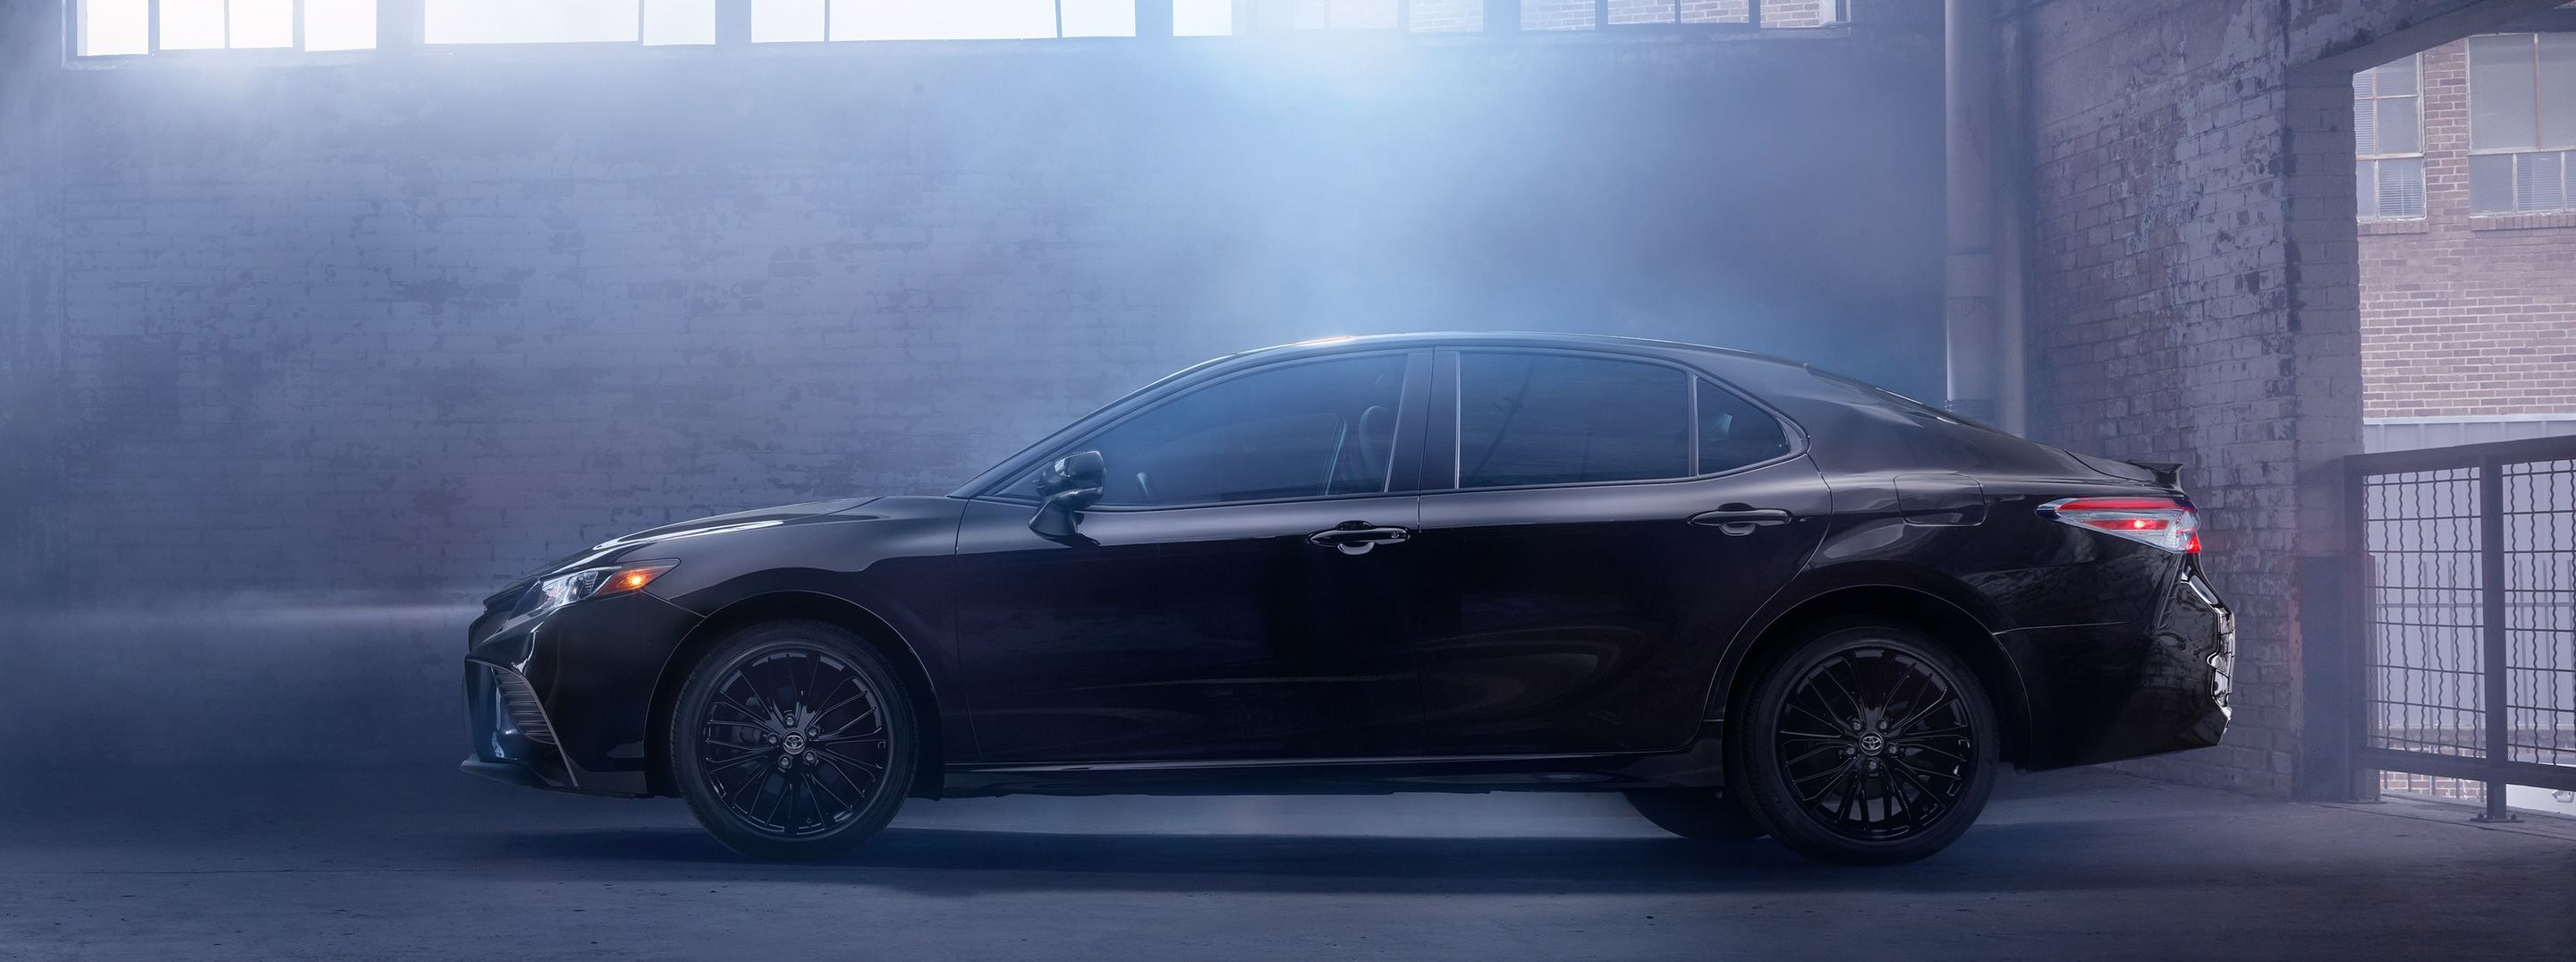 2020 Toyota Camry Financing in Tinley Park, IL